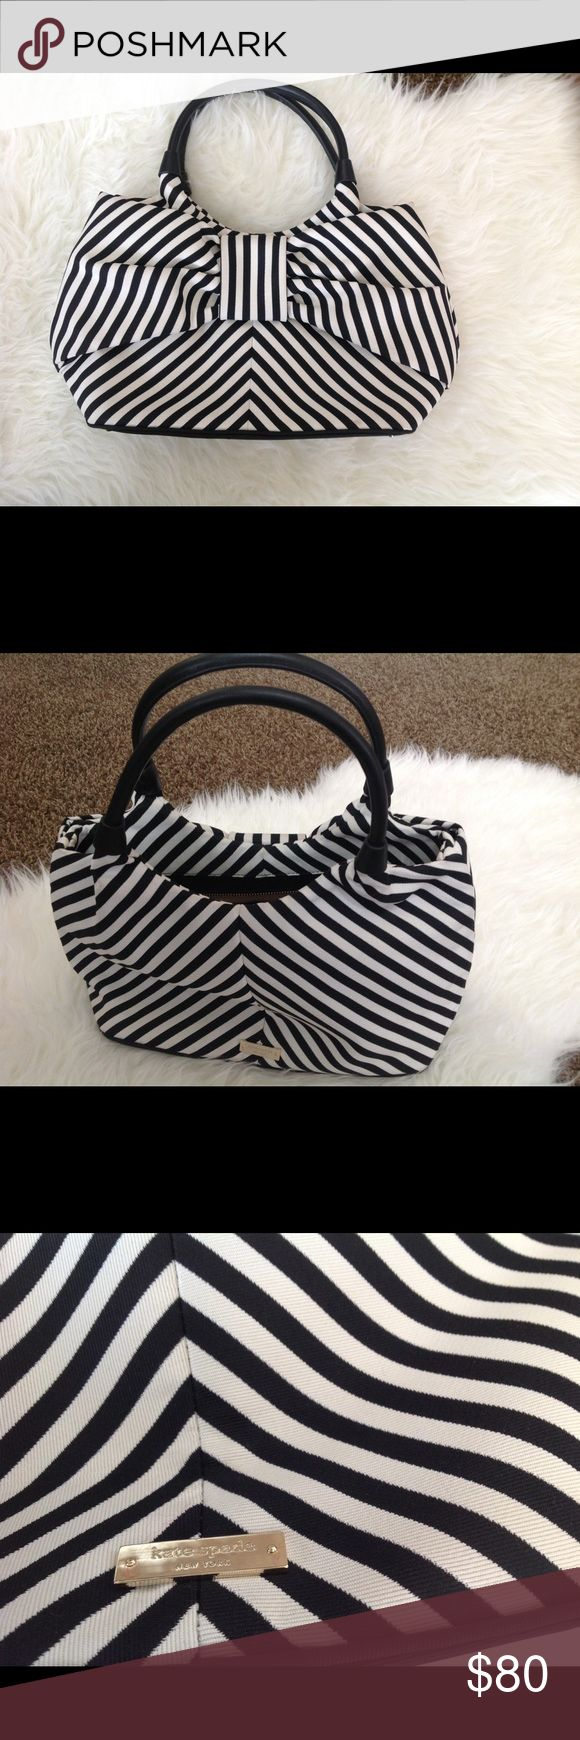 Kate Spade black and white stripe bow purse Kate Spade black and white stripe bow purse. Only used a couple times, no signs of wear. kate spade Bags